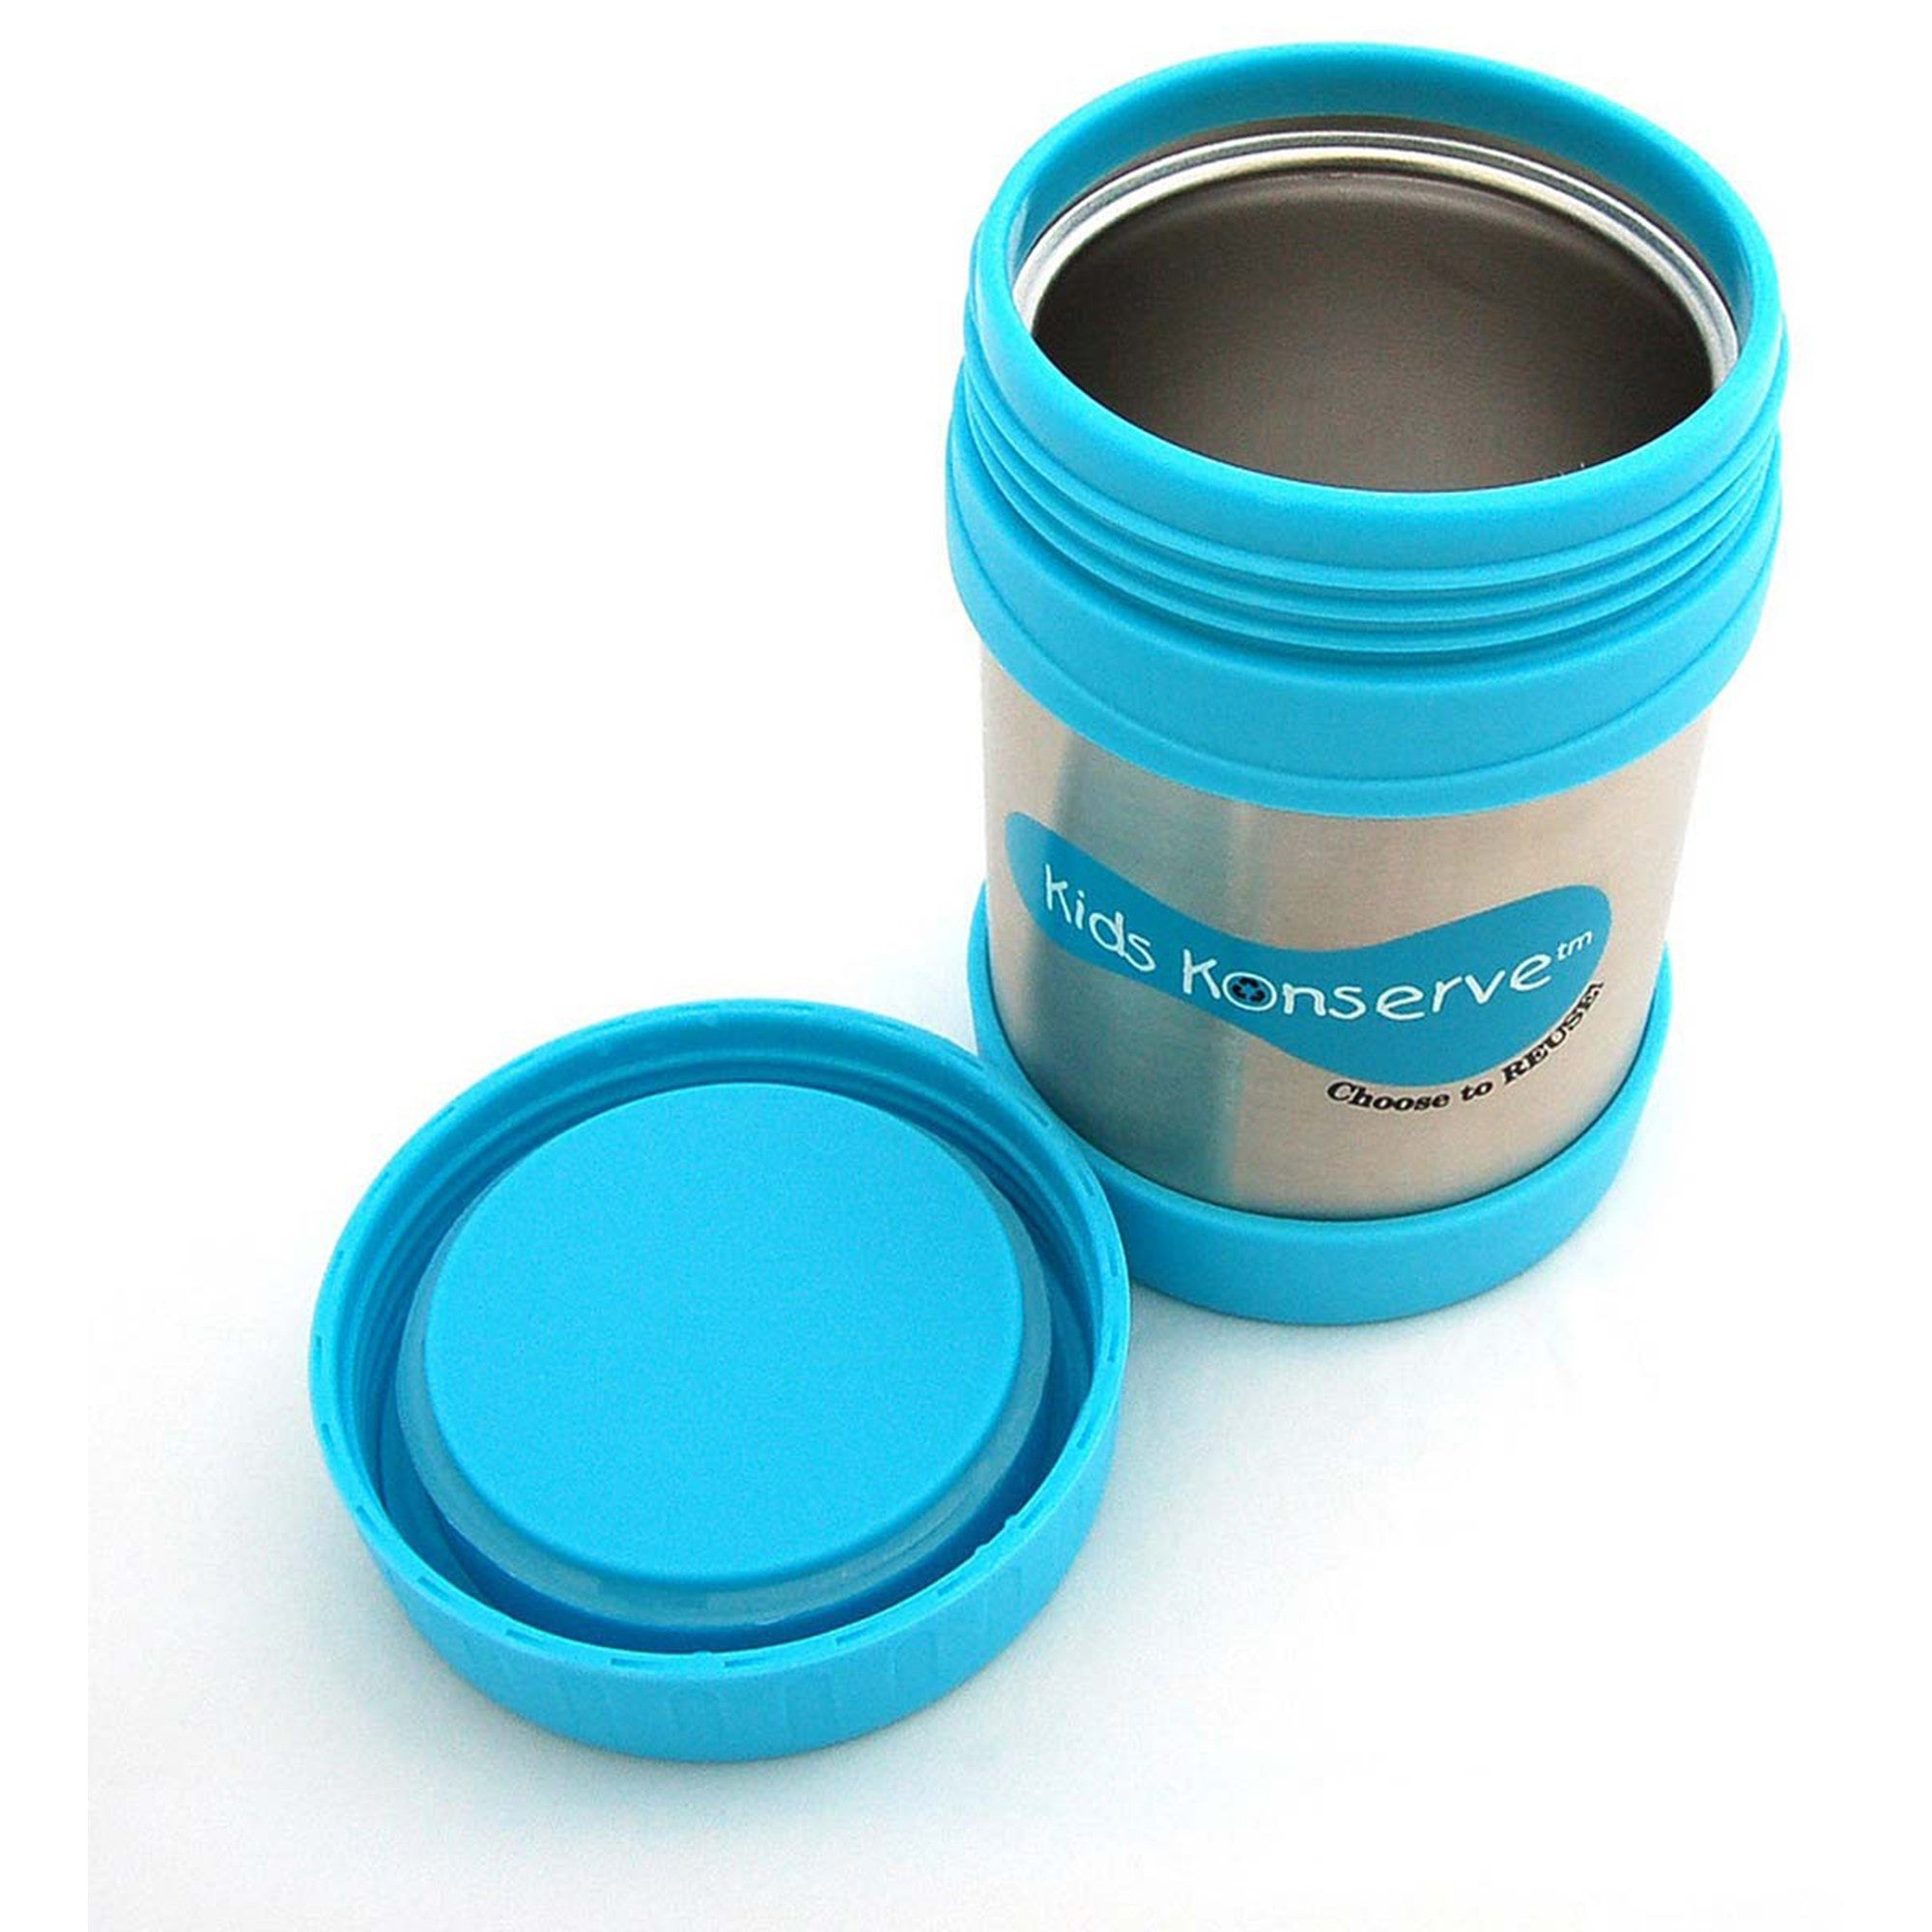 Kids Konserve Insulated Food Jar  Sky - Kids Konserve - Little Earth Nest - 7